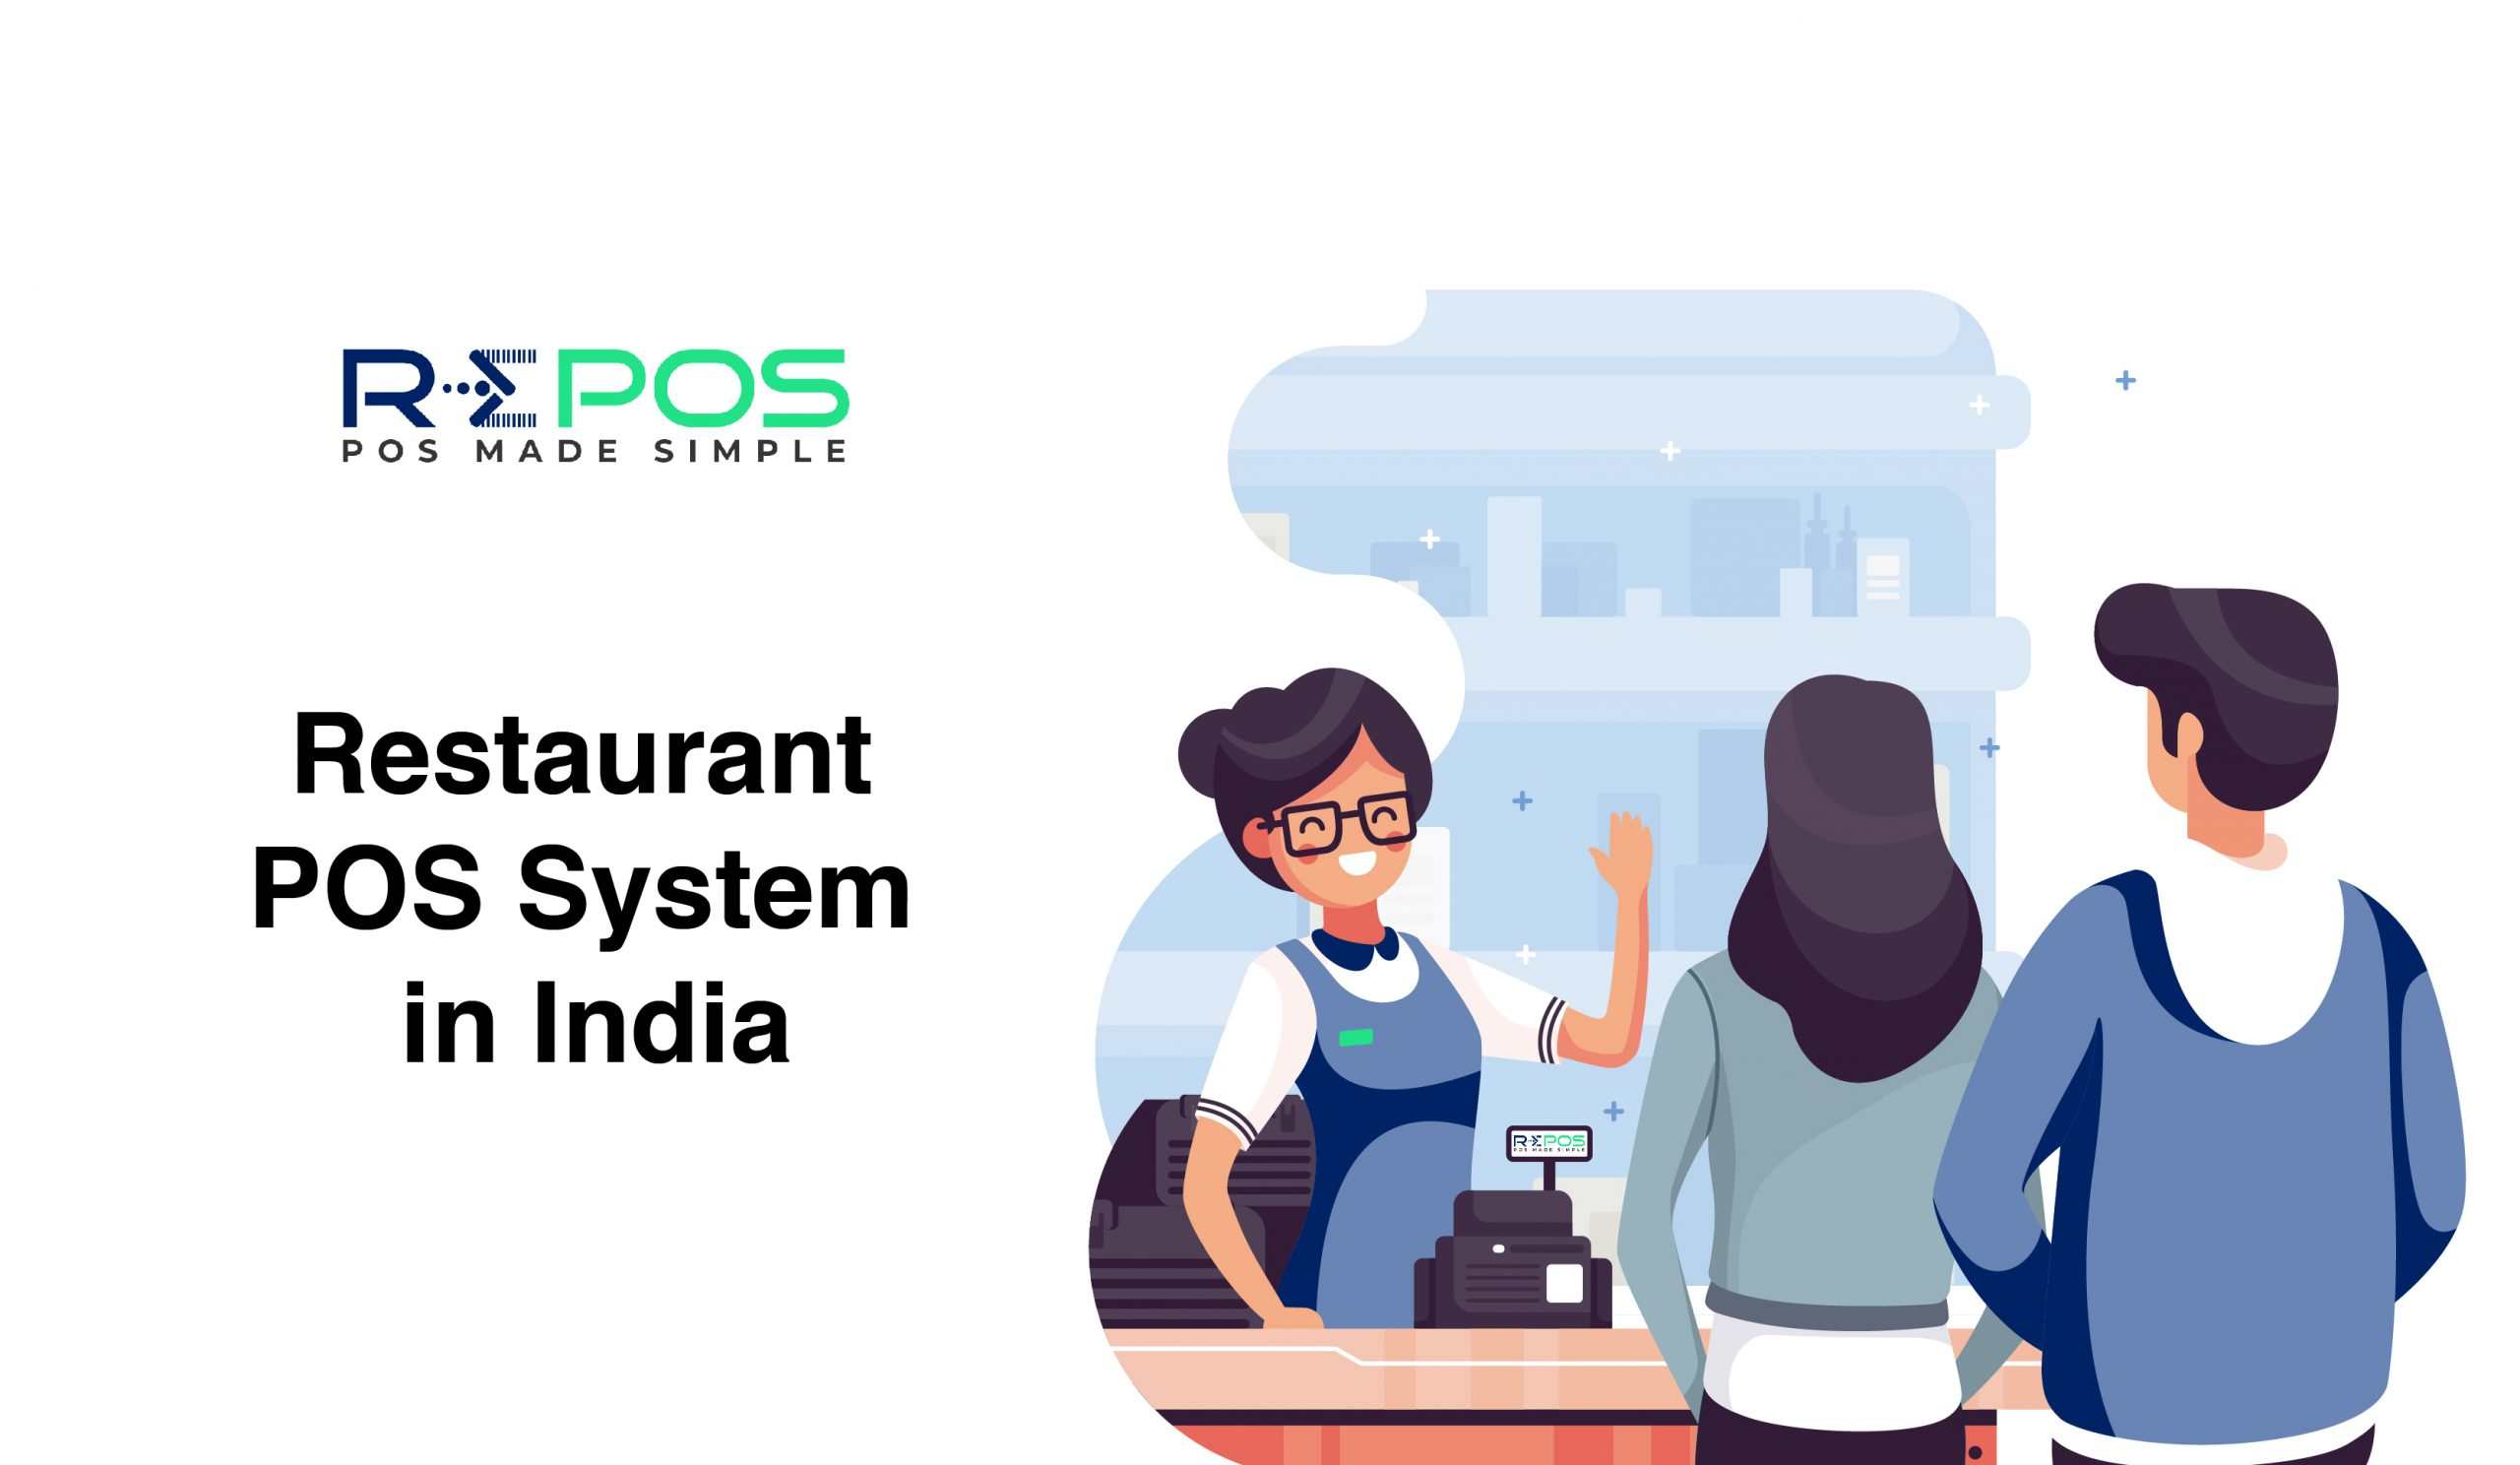 RePOS Restaurant POS System in India